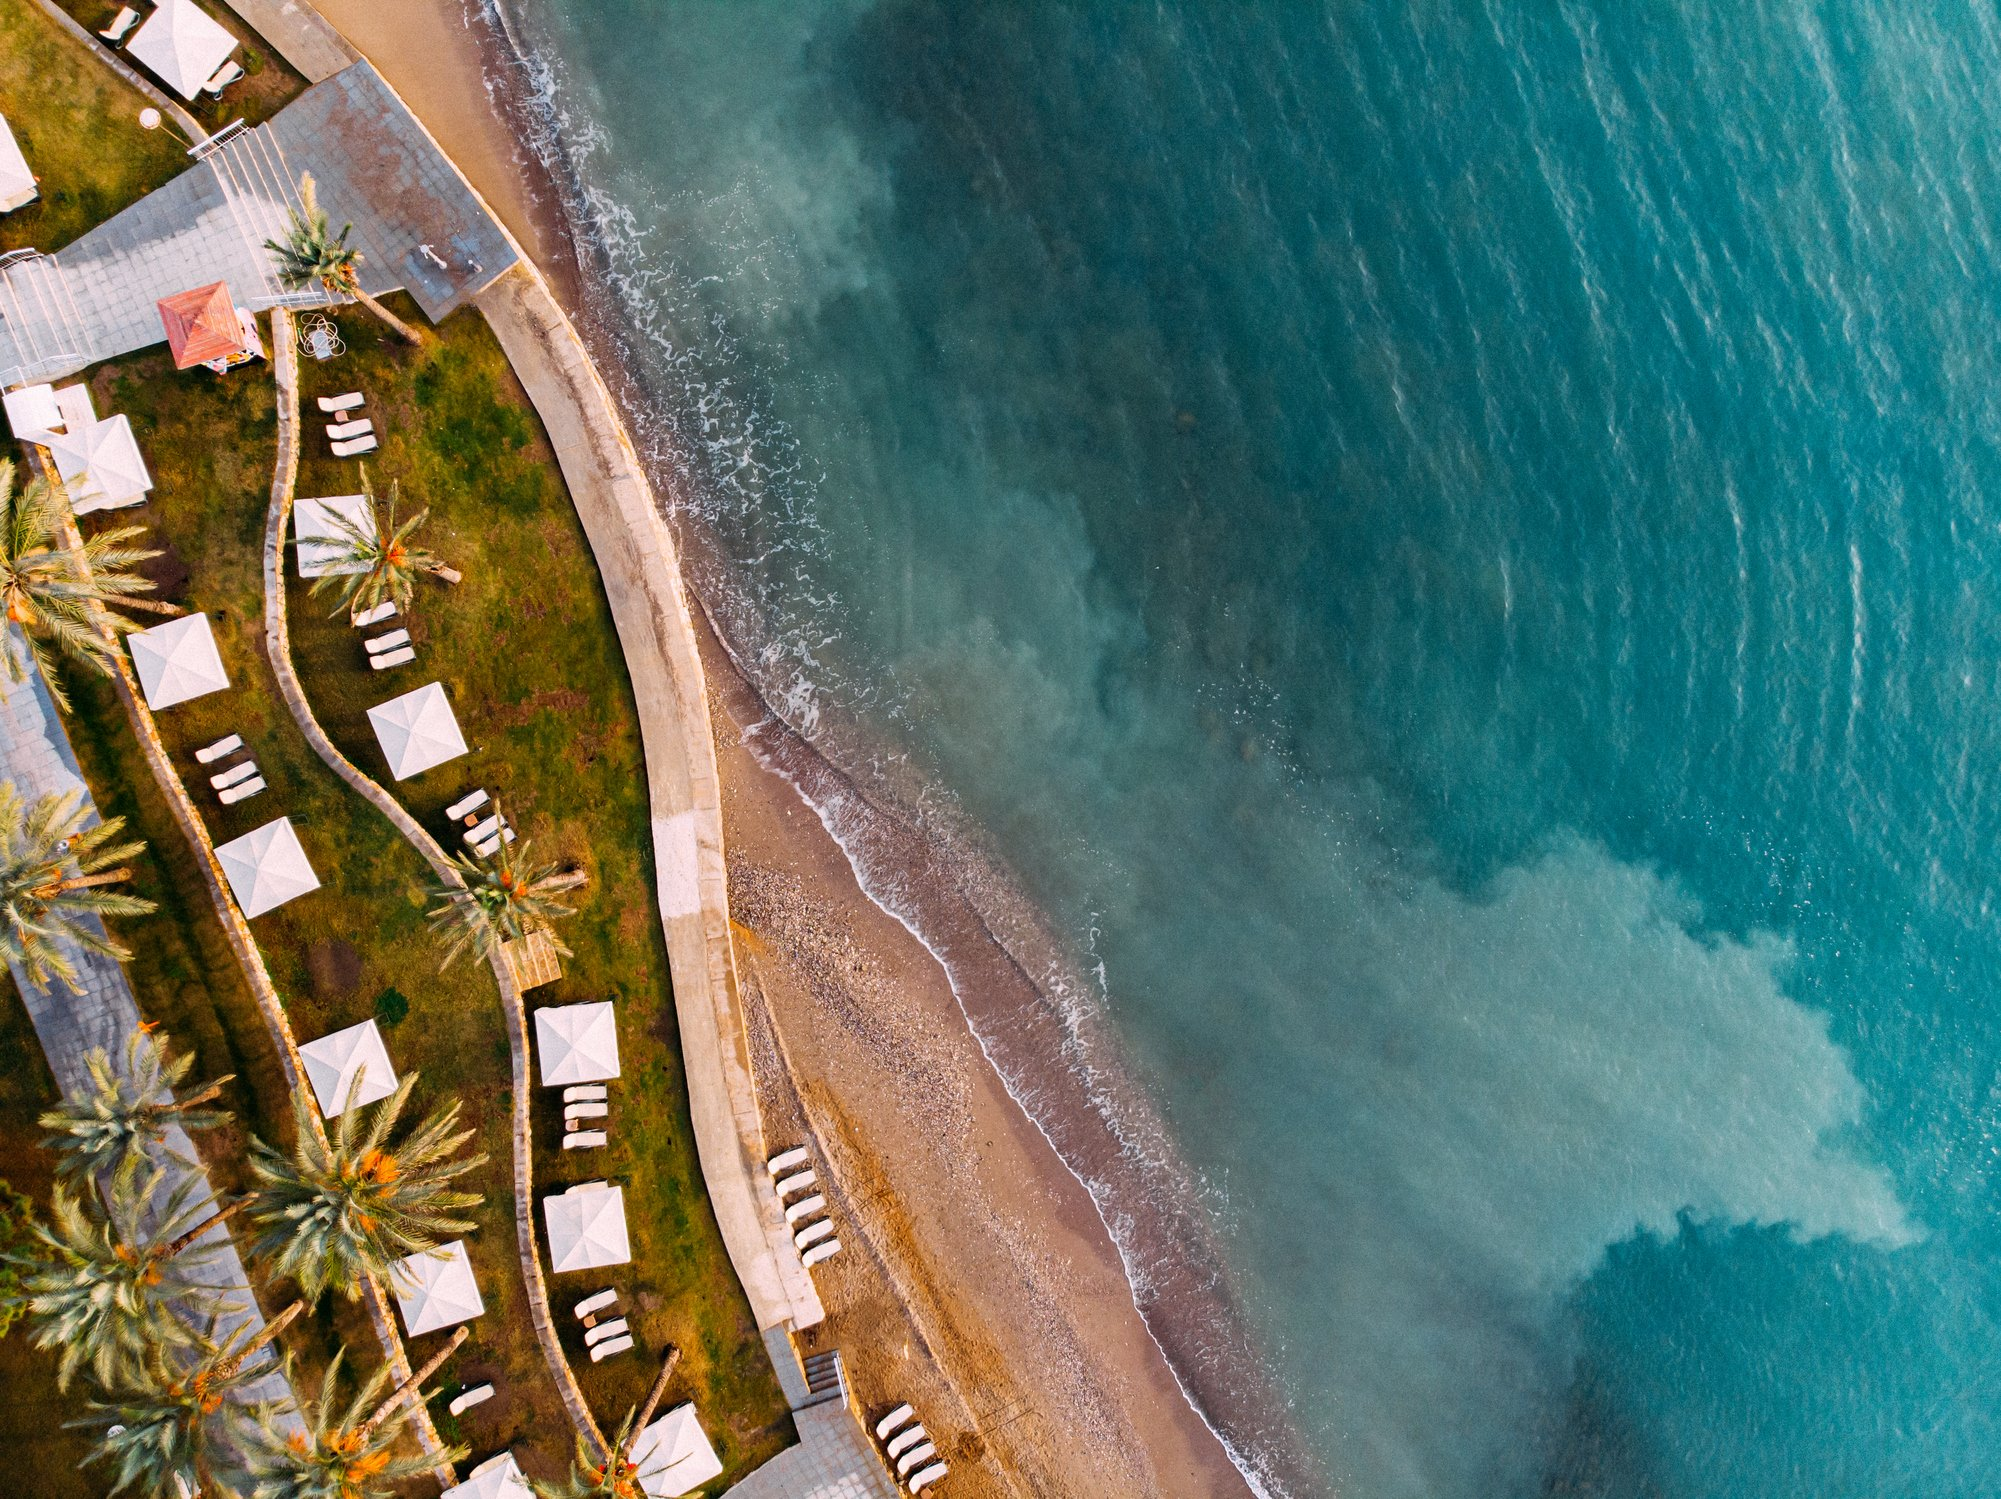 Turkey's southern coastline could become the next tropical destination if this change persists. (iStock Photo)